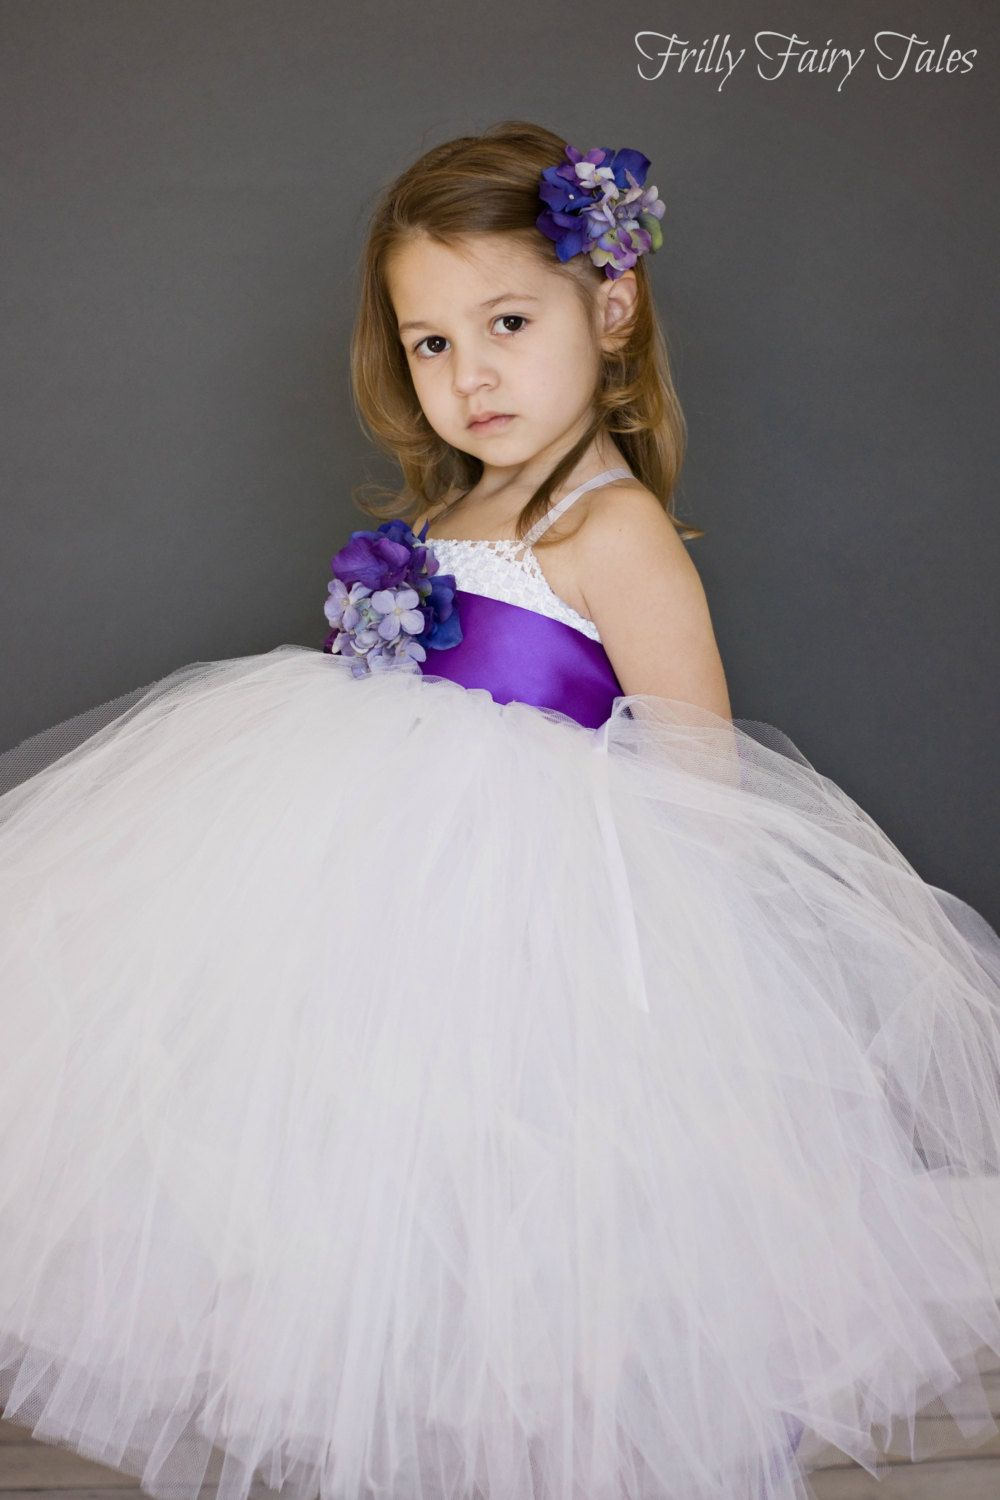 White flower girl dress with purple floral sash via etsy wedding white flower girl dress with purple floral sash via etsy mightylinksfo